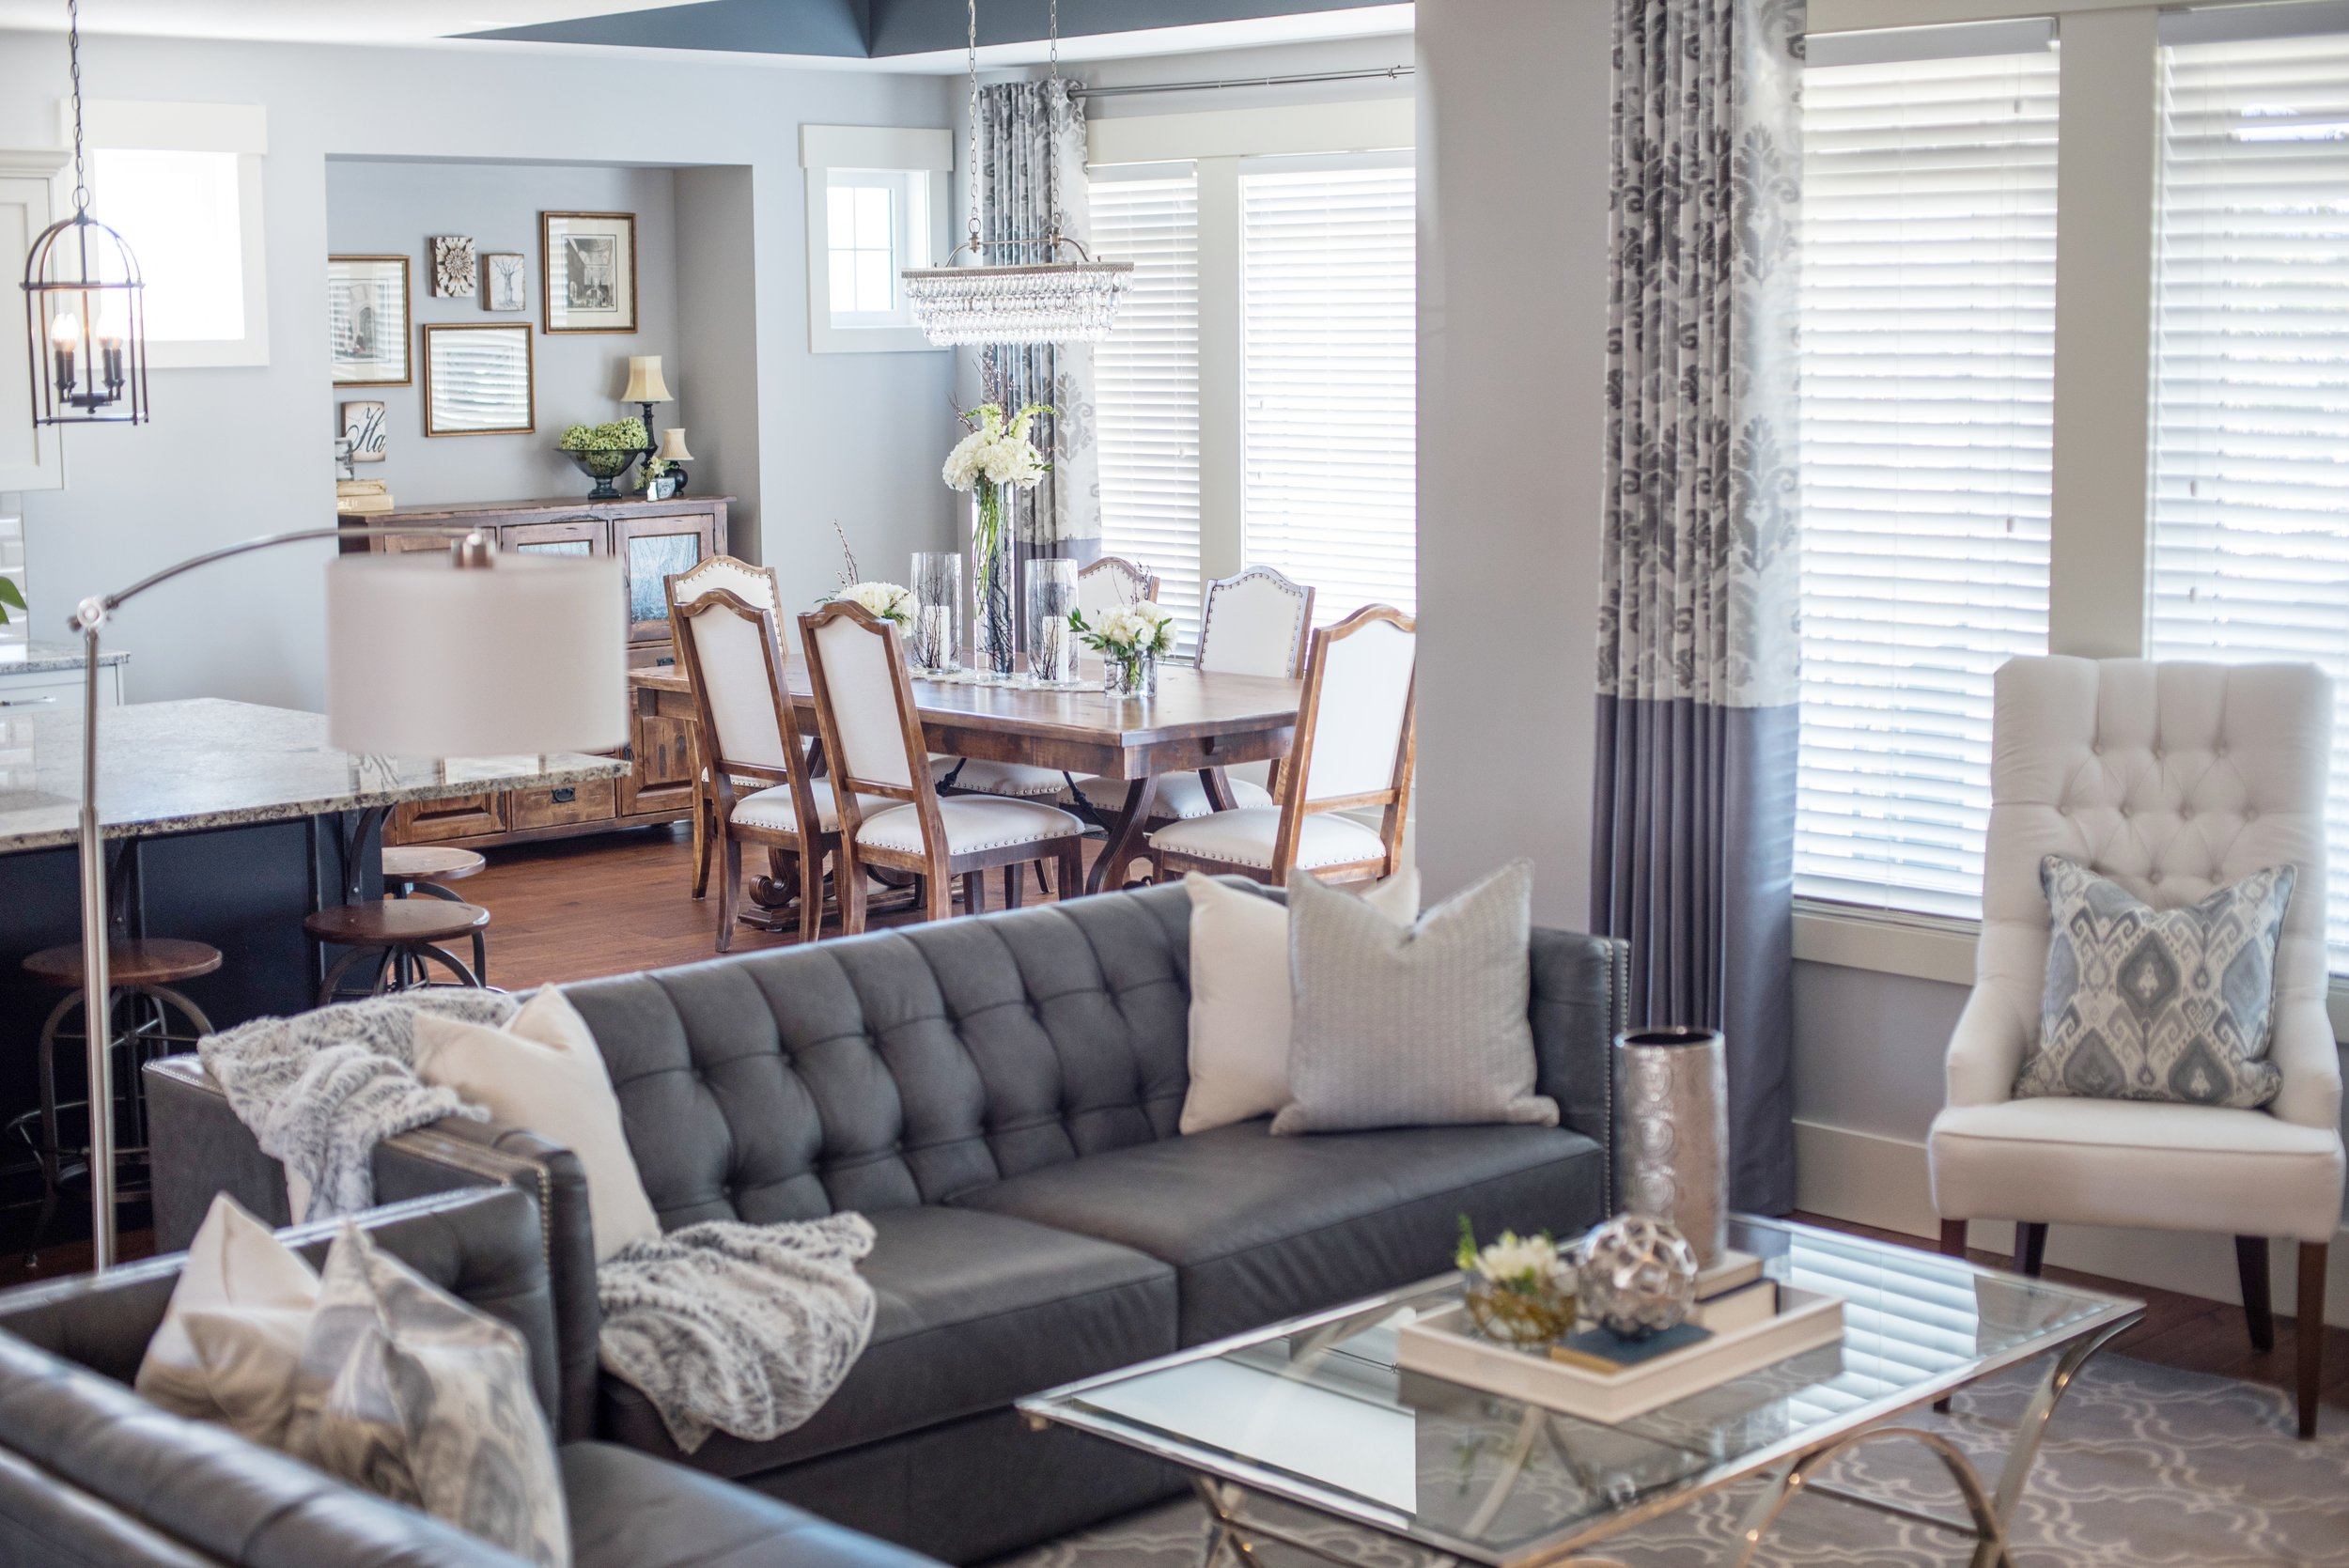 GREY AND WHITE LIVING ROOM, GREY LEATHER FURNITURE, GLASS COFFEE TABLE, WHITE UPHOLSTERED CHAIR, DRAPERY, INTERIOR DESIGNS BY ADRIENNE, CRANBROOK BC